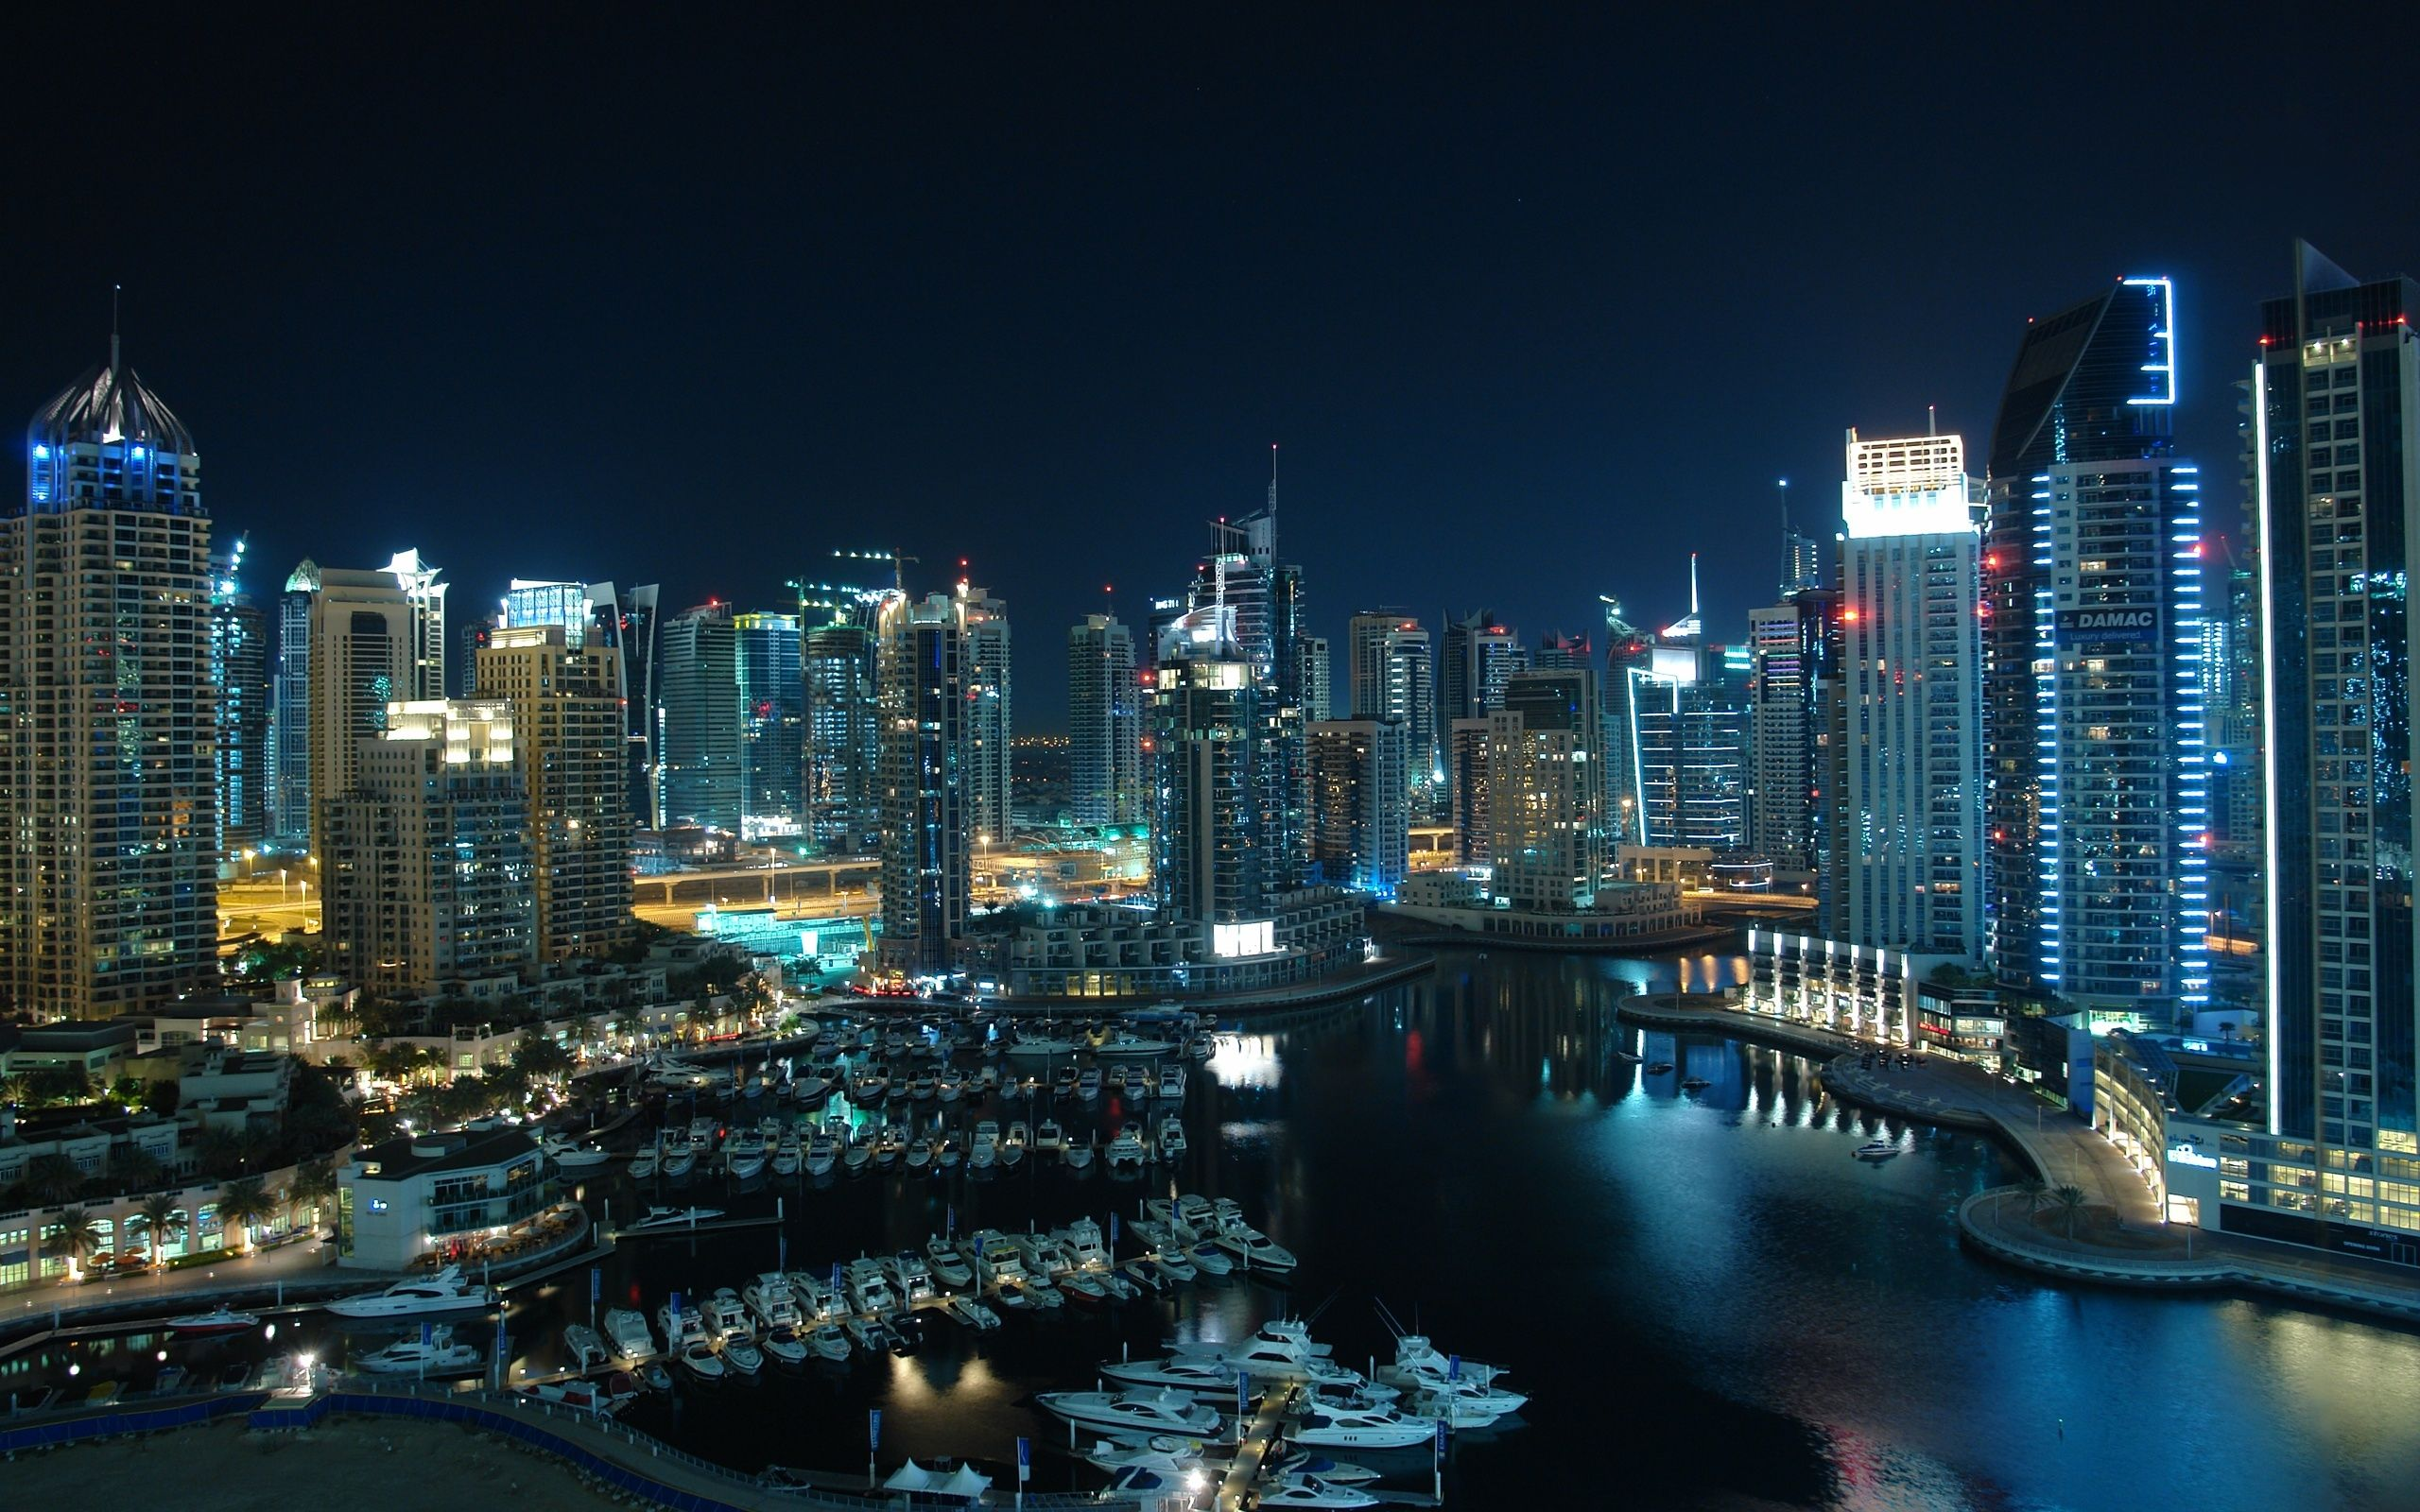 Amazing Dubai Marina Retina Macbook Pro Wallpapers 1 Dubai